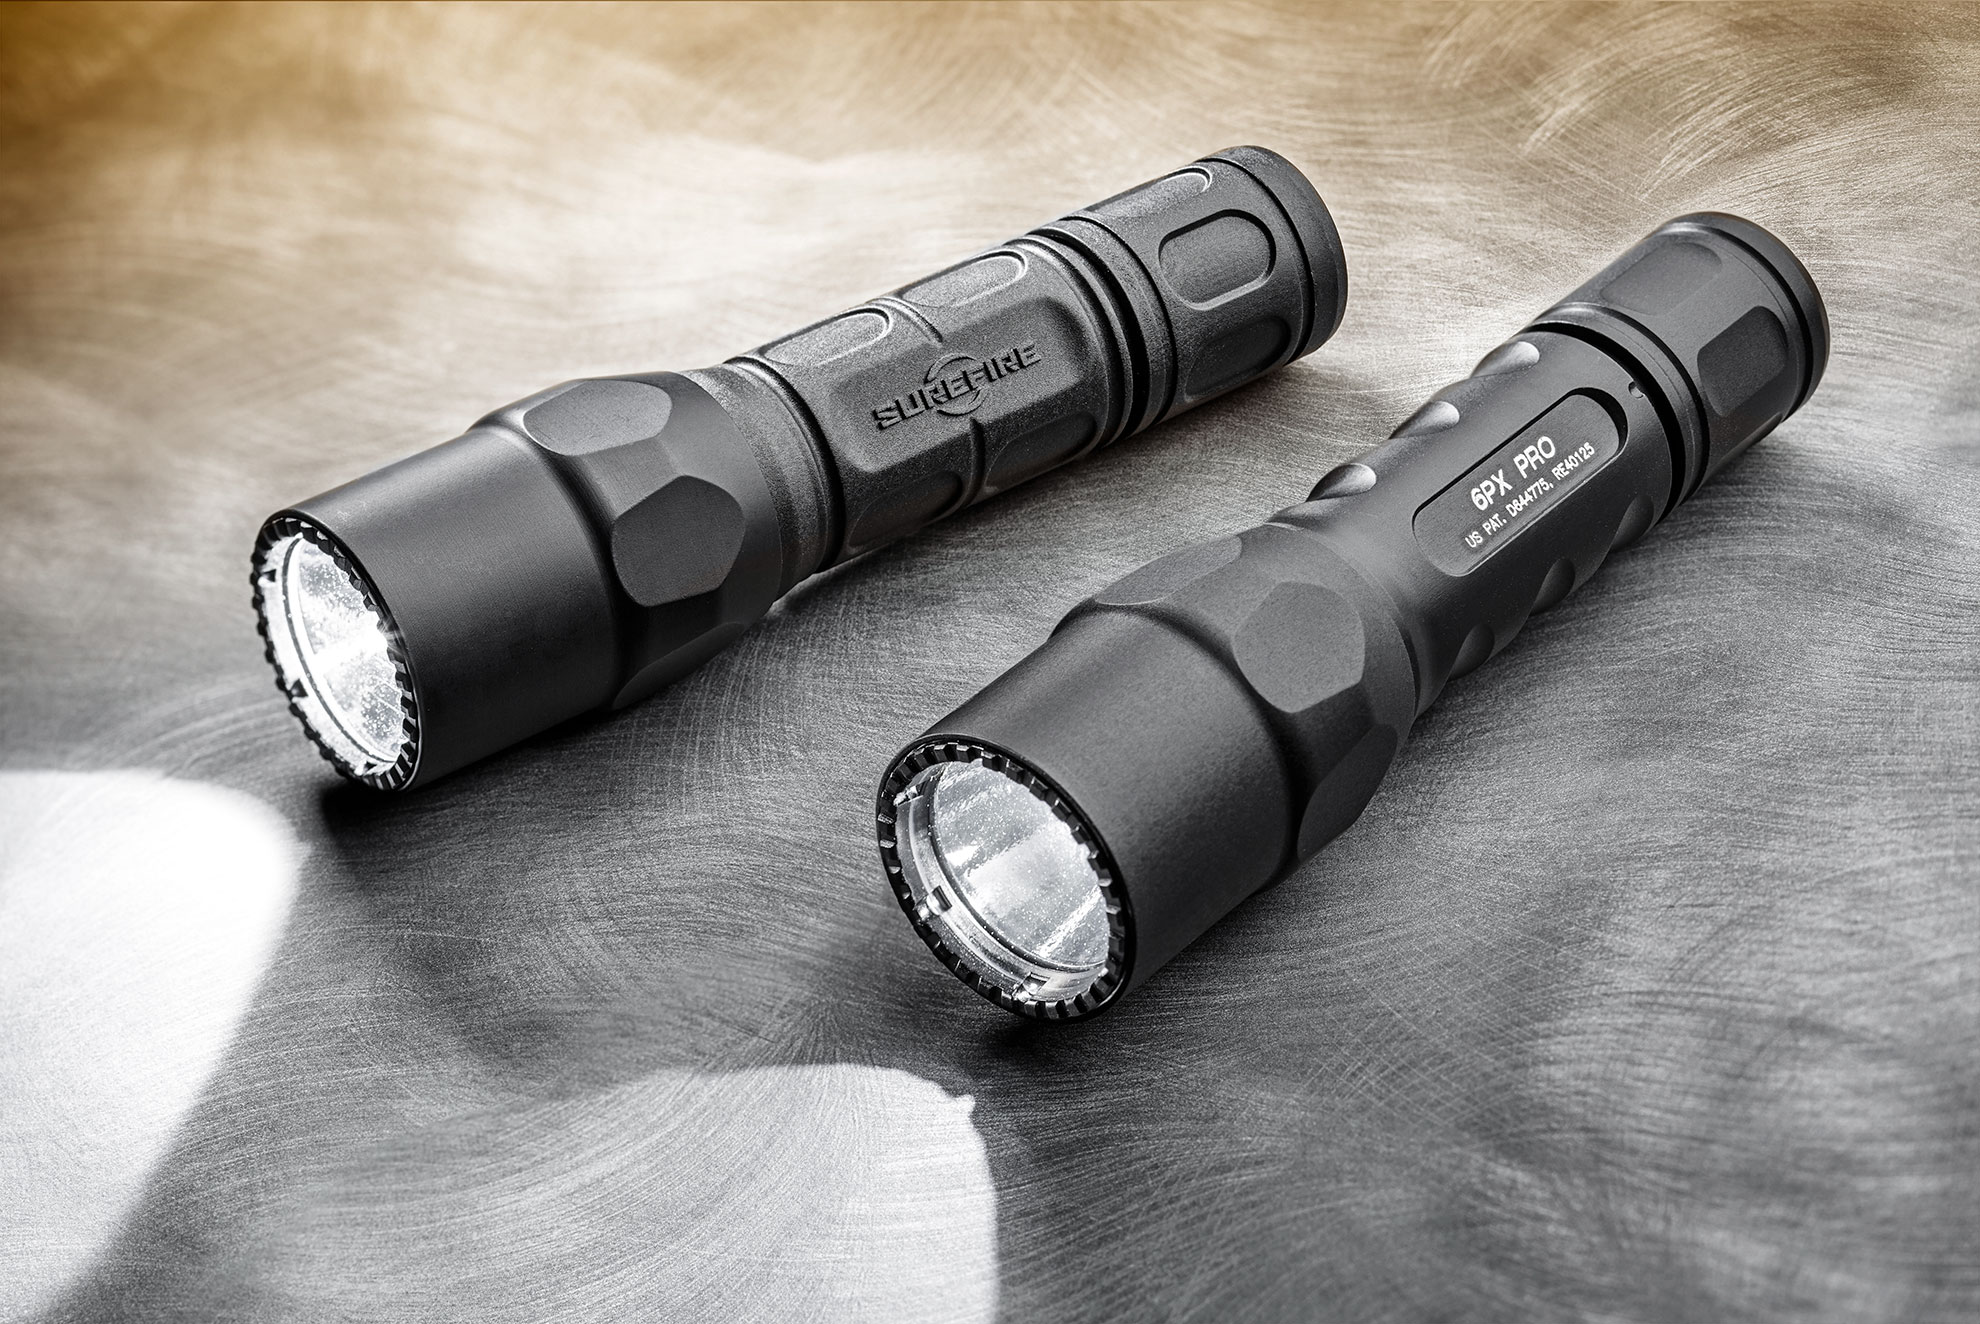 SureFire 6P 6PX and g2X